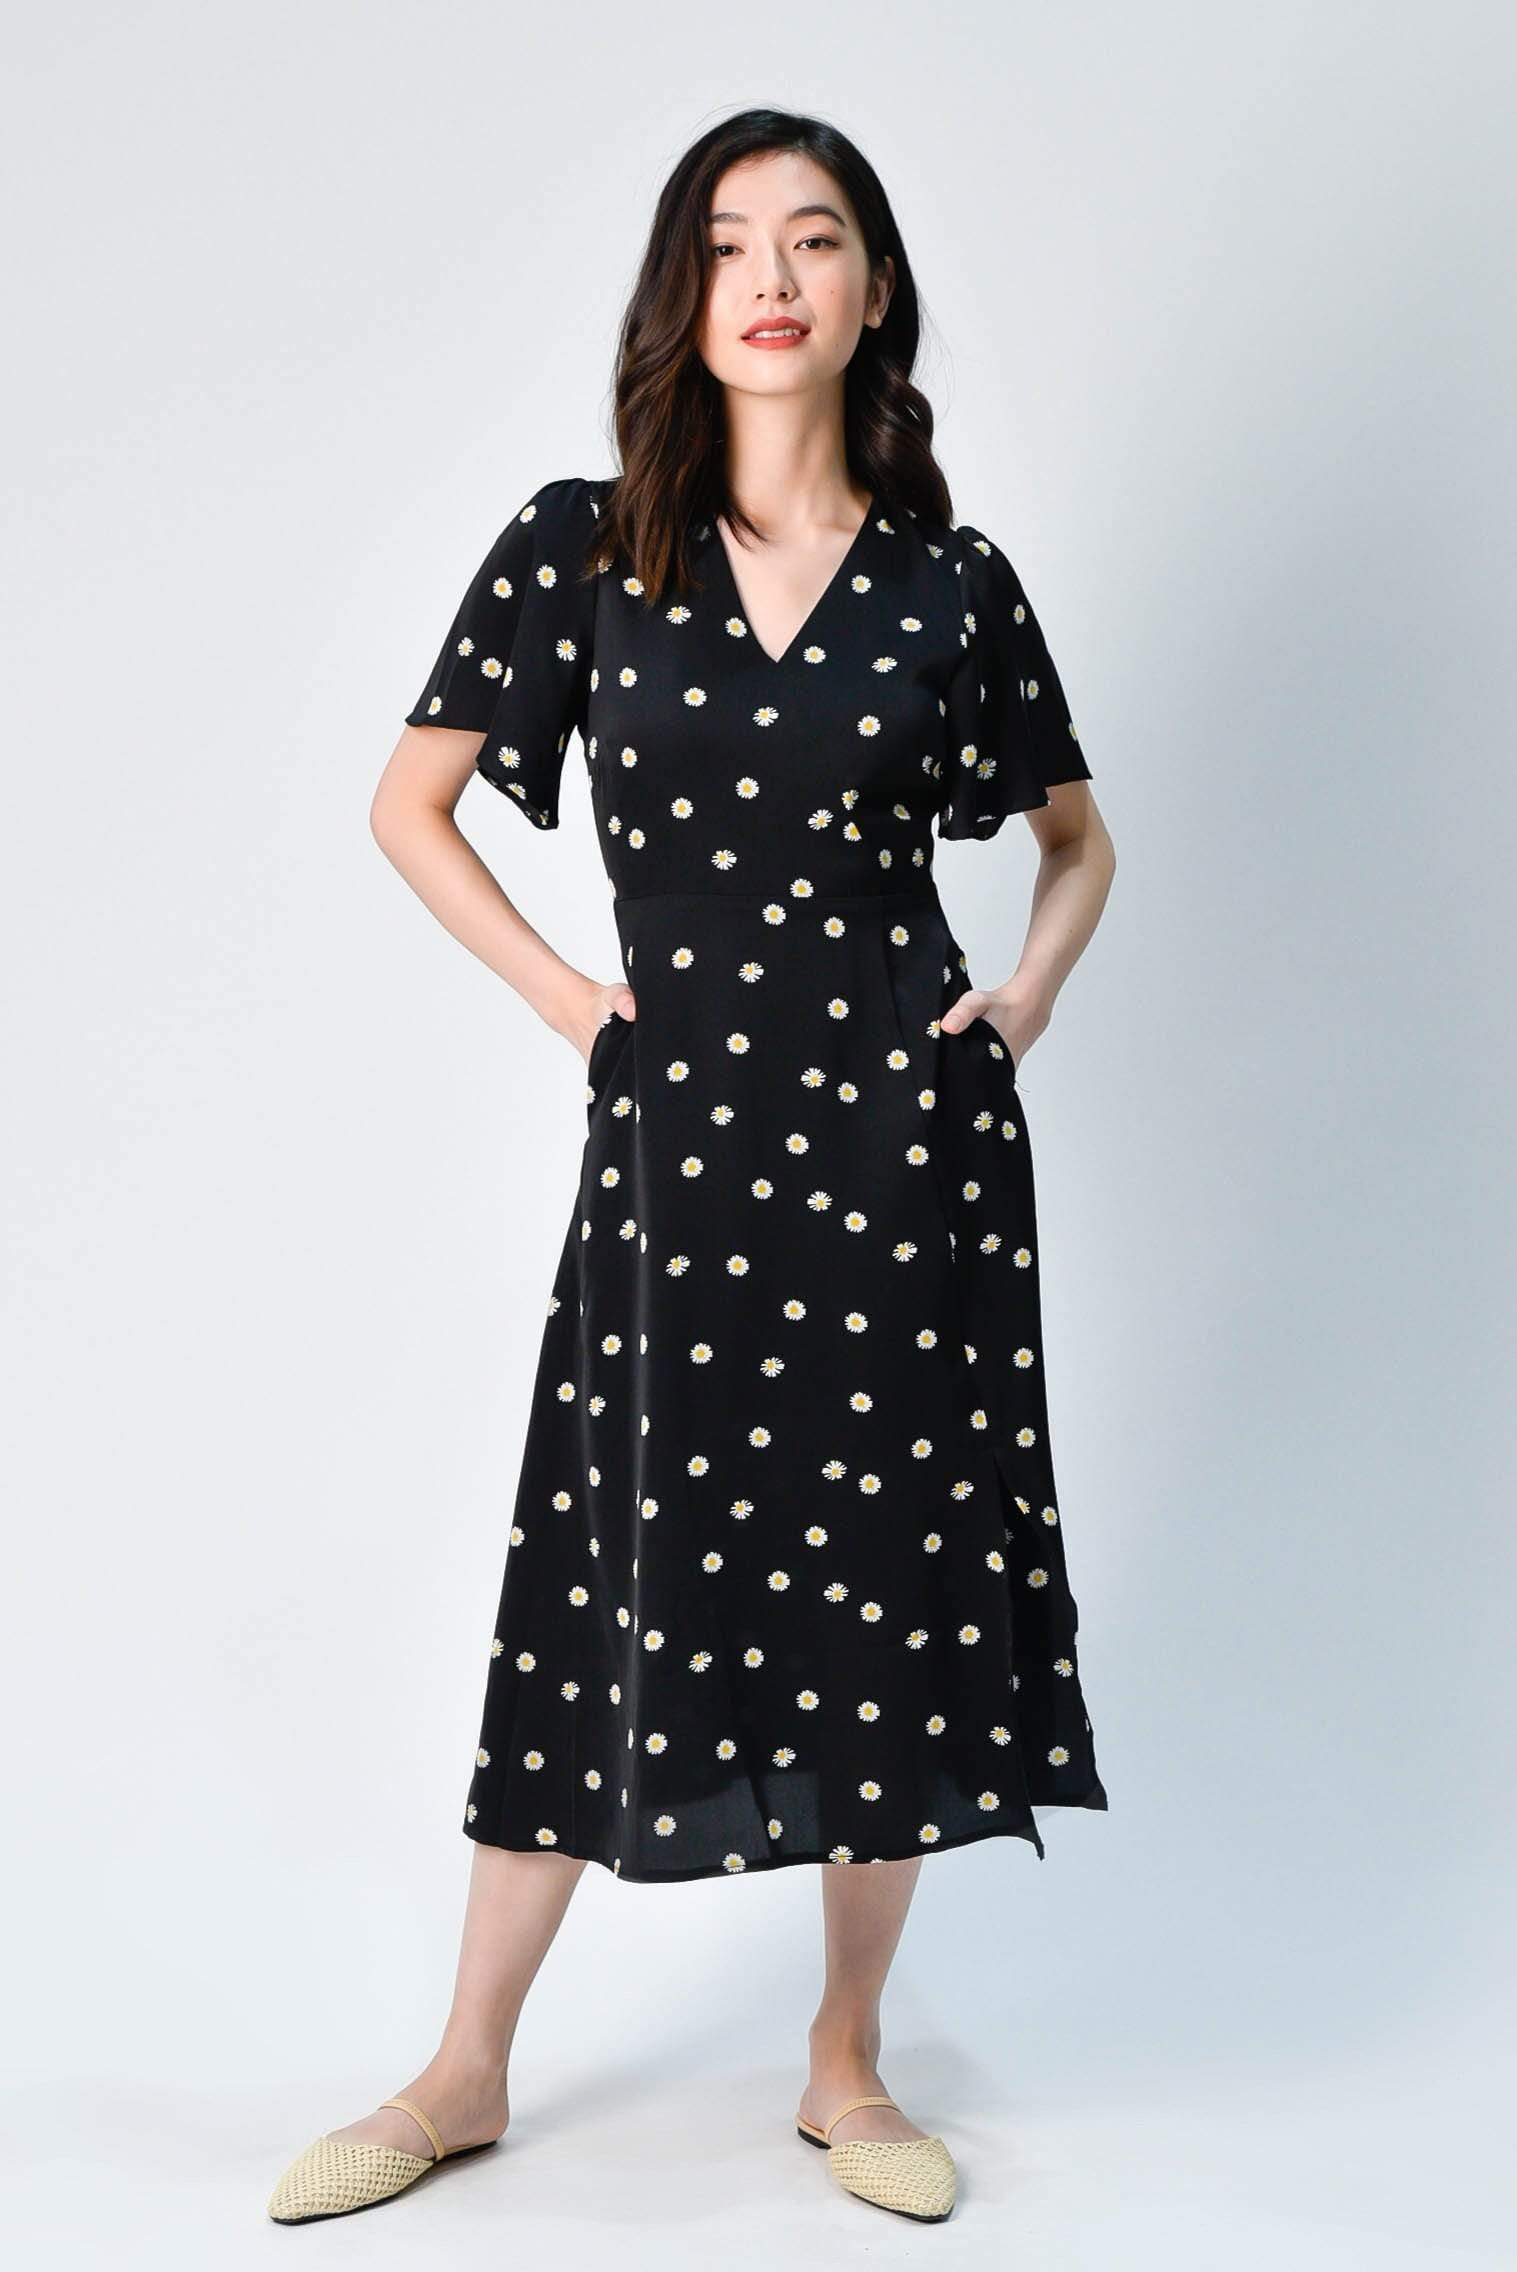 FIORE BLACK DAISY FLUTTER-SLEEVED MIDI DRESS